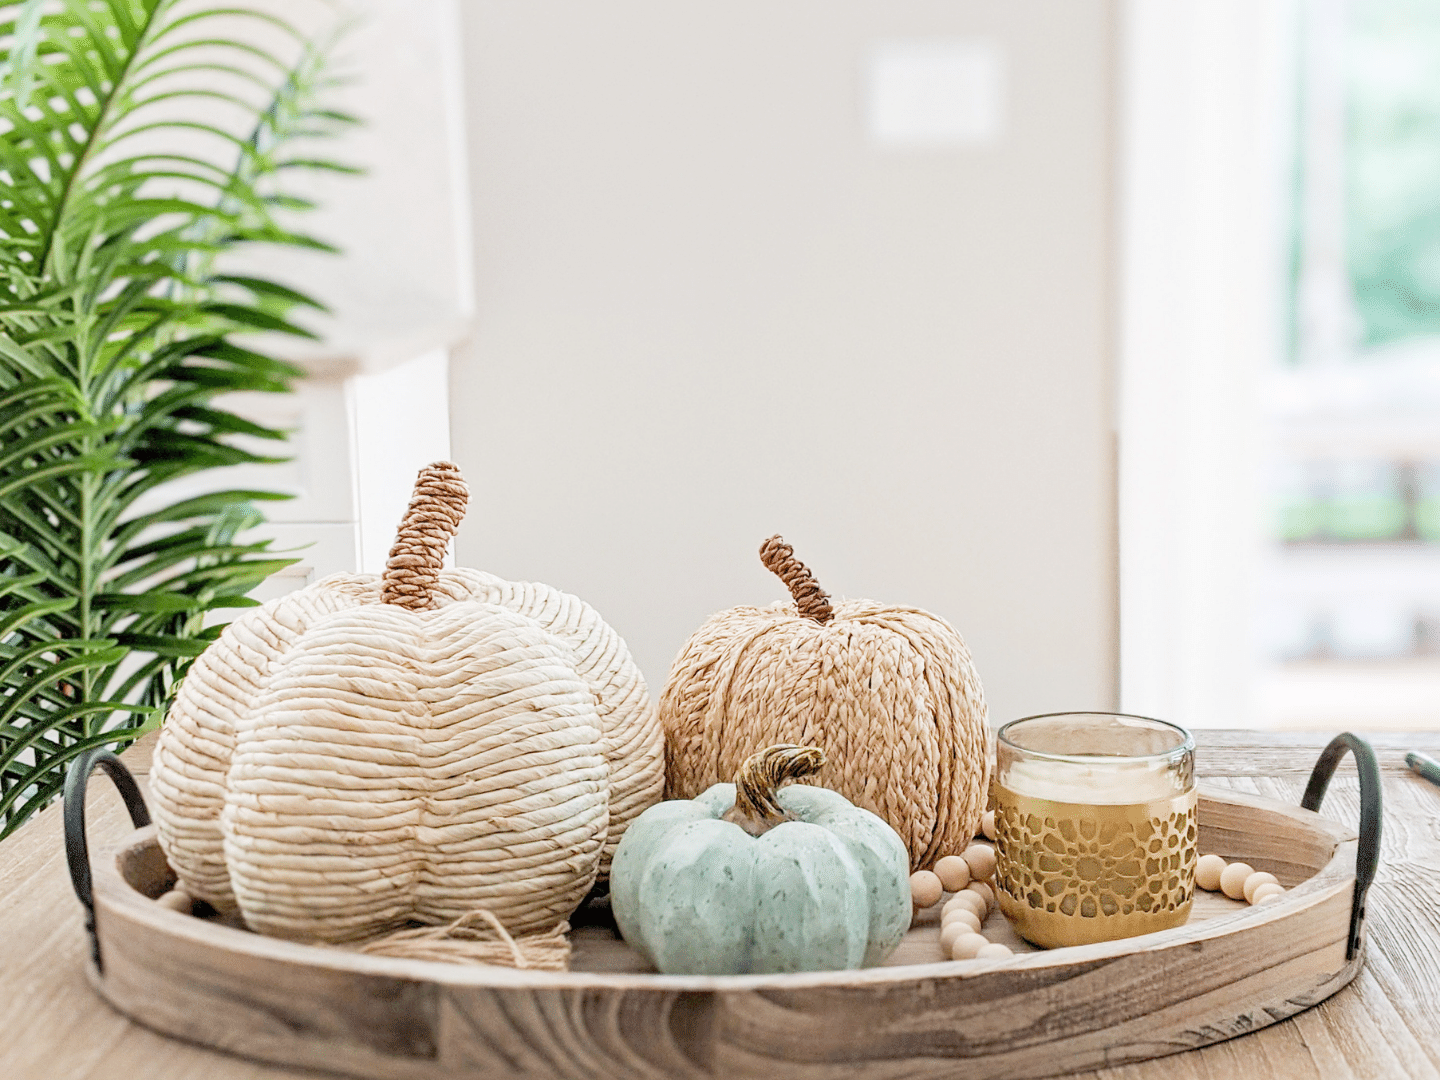 I styled the Corn Husk and Raffia Pumpkins on a tray with the Wood Bead Garland linked in the Tray & Tray Decor section below.